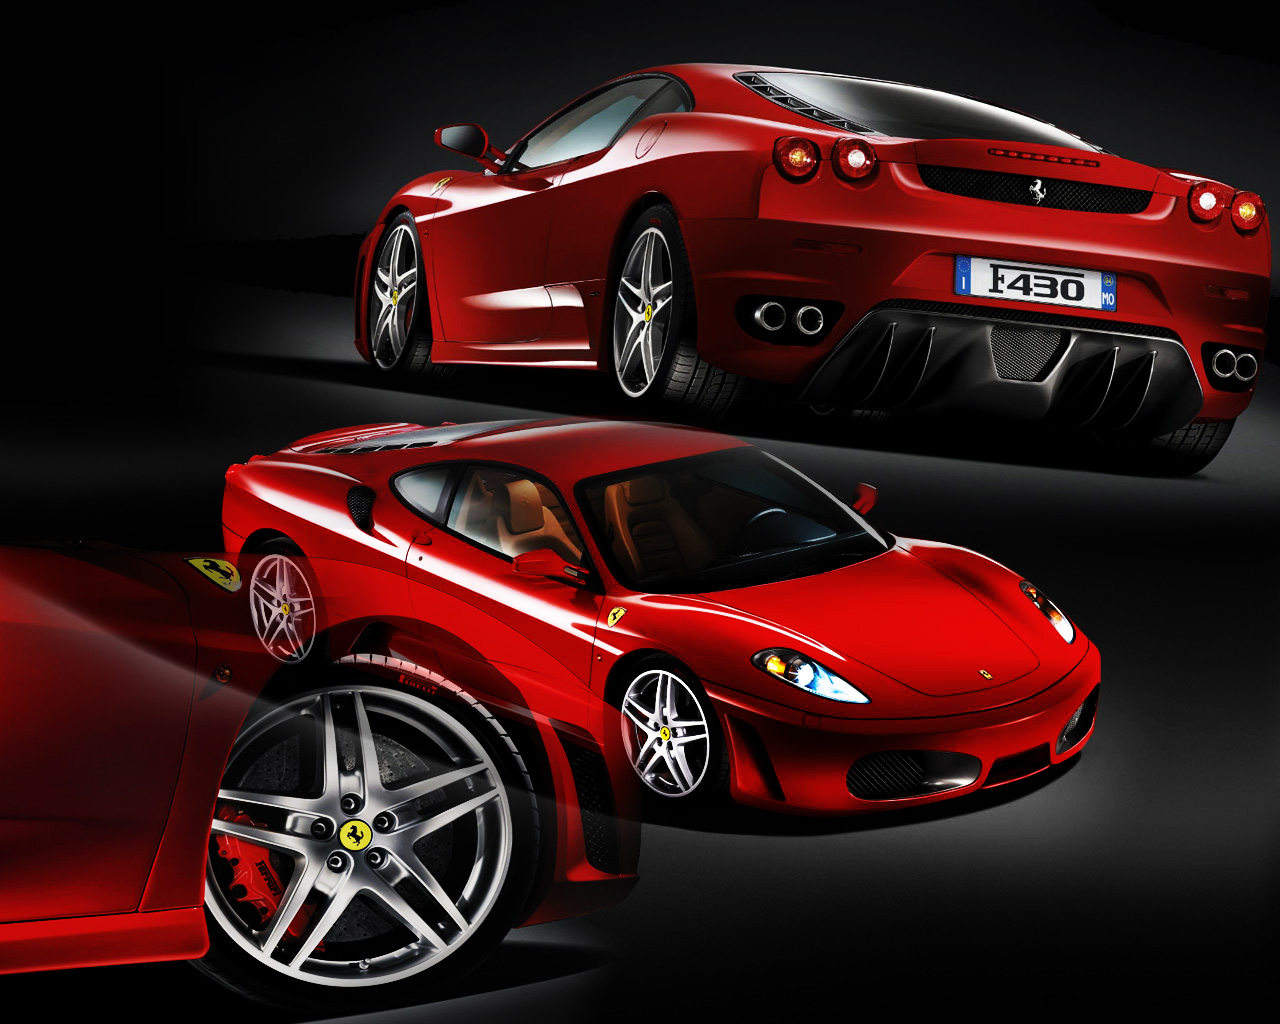 Ferrari Cars 5 Car Background Wallpaper